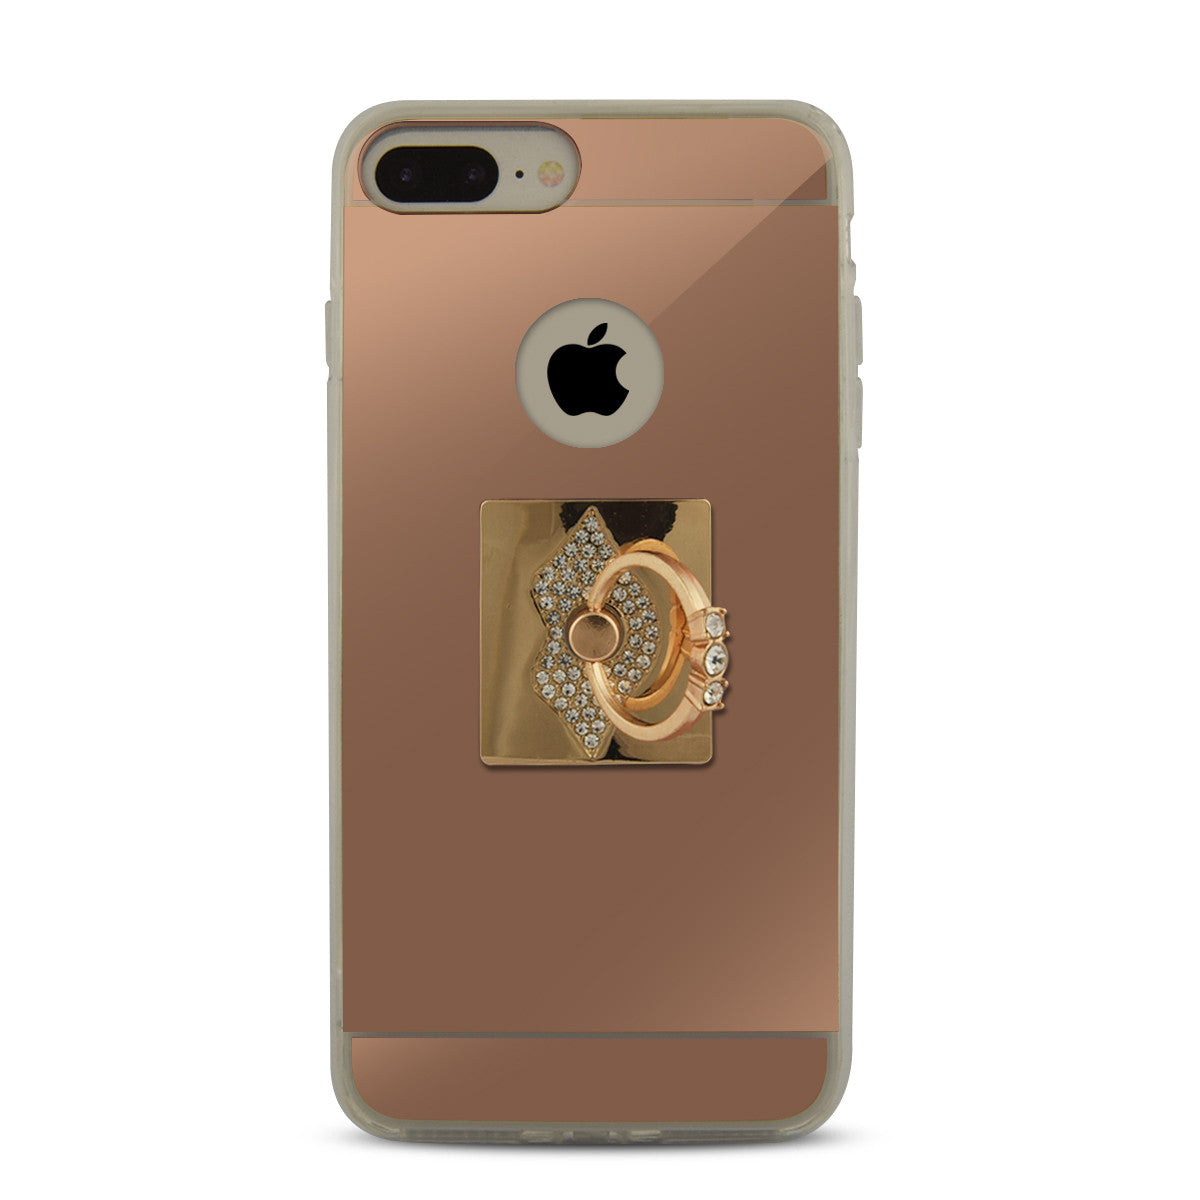 competitive price c397d 48858 iOrigin iPhone 7 & 7 Plus Rose Gold Mirror Case with Ring Stand/Holder -  Lips